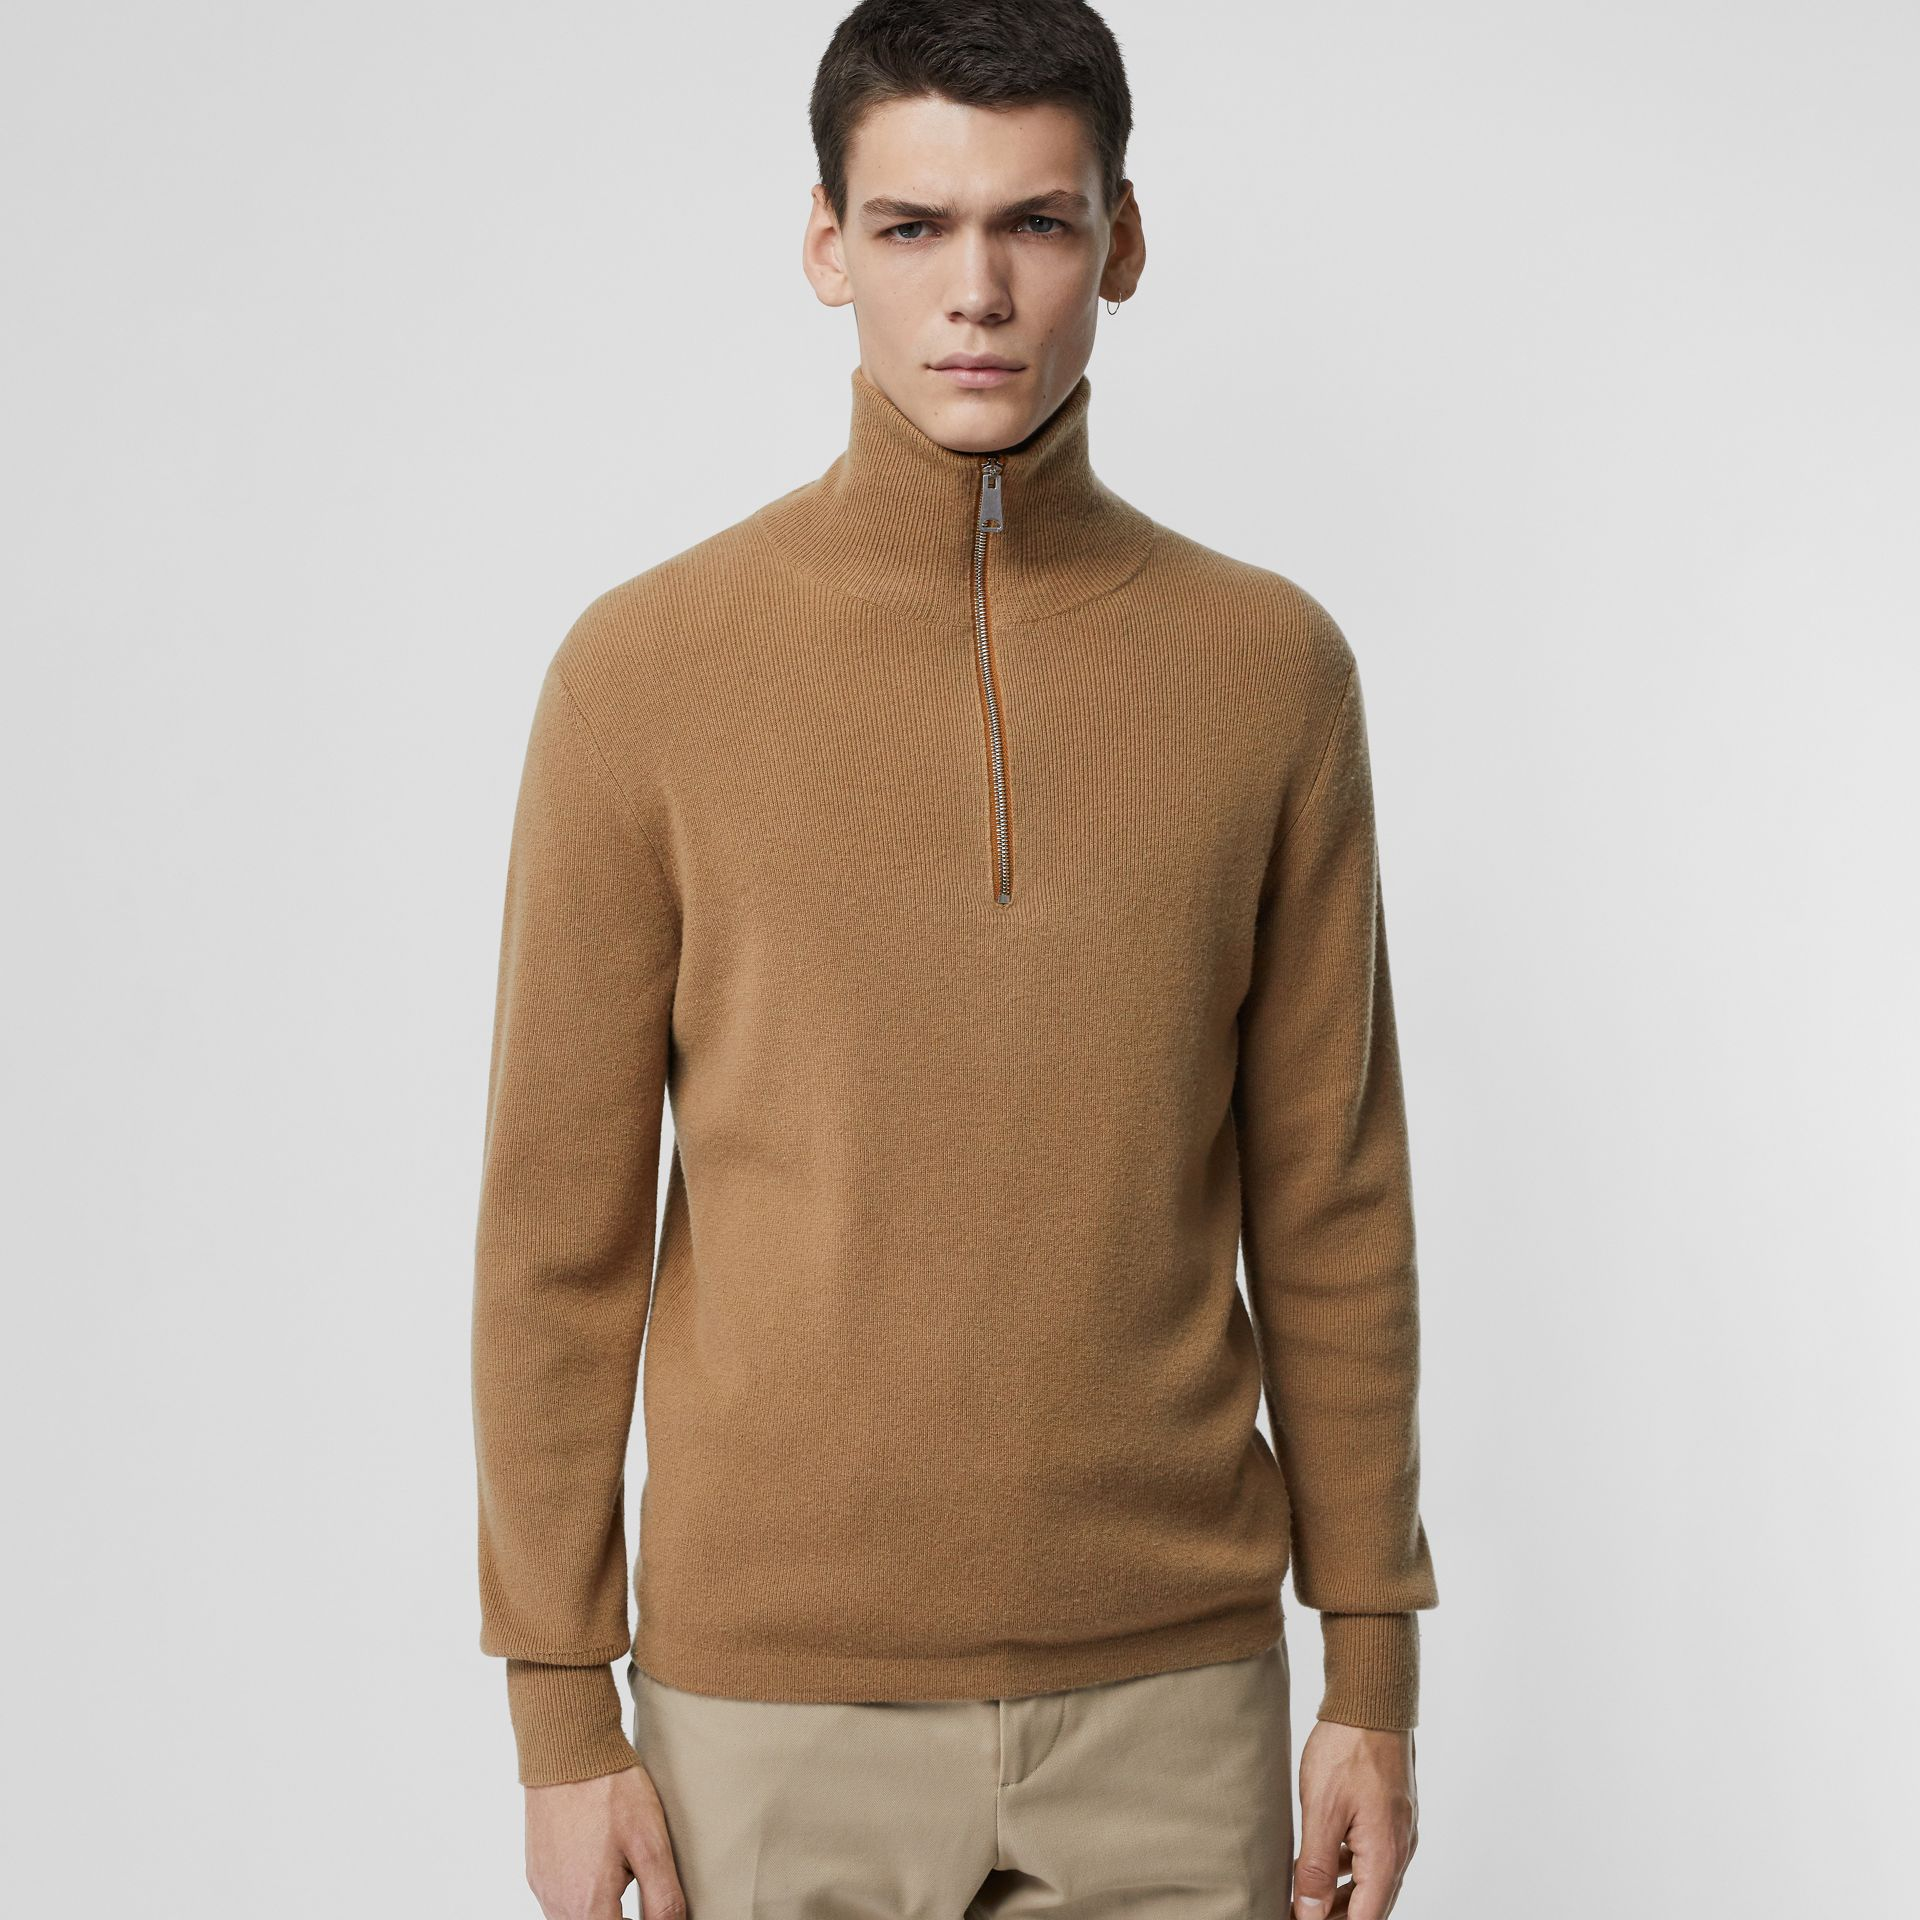 Rib Knit Cashmere Half-zip Sweater in Camel - Men | Burberry - gallery image 0